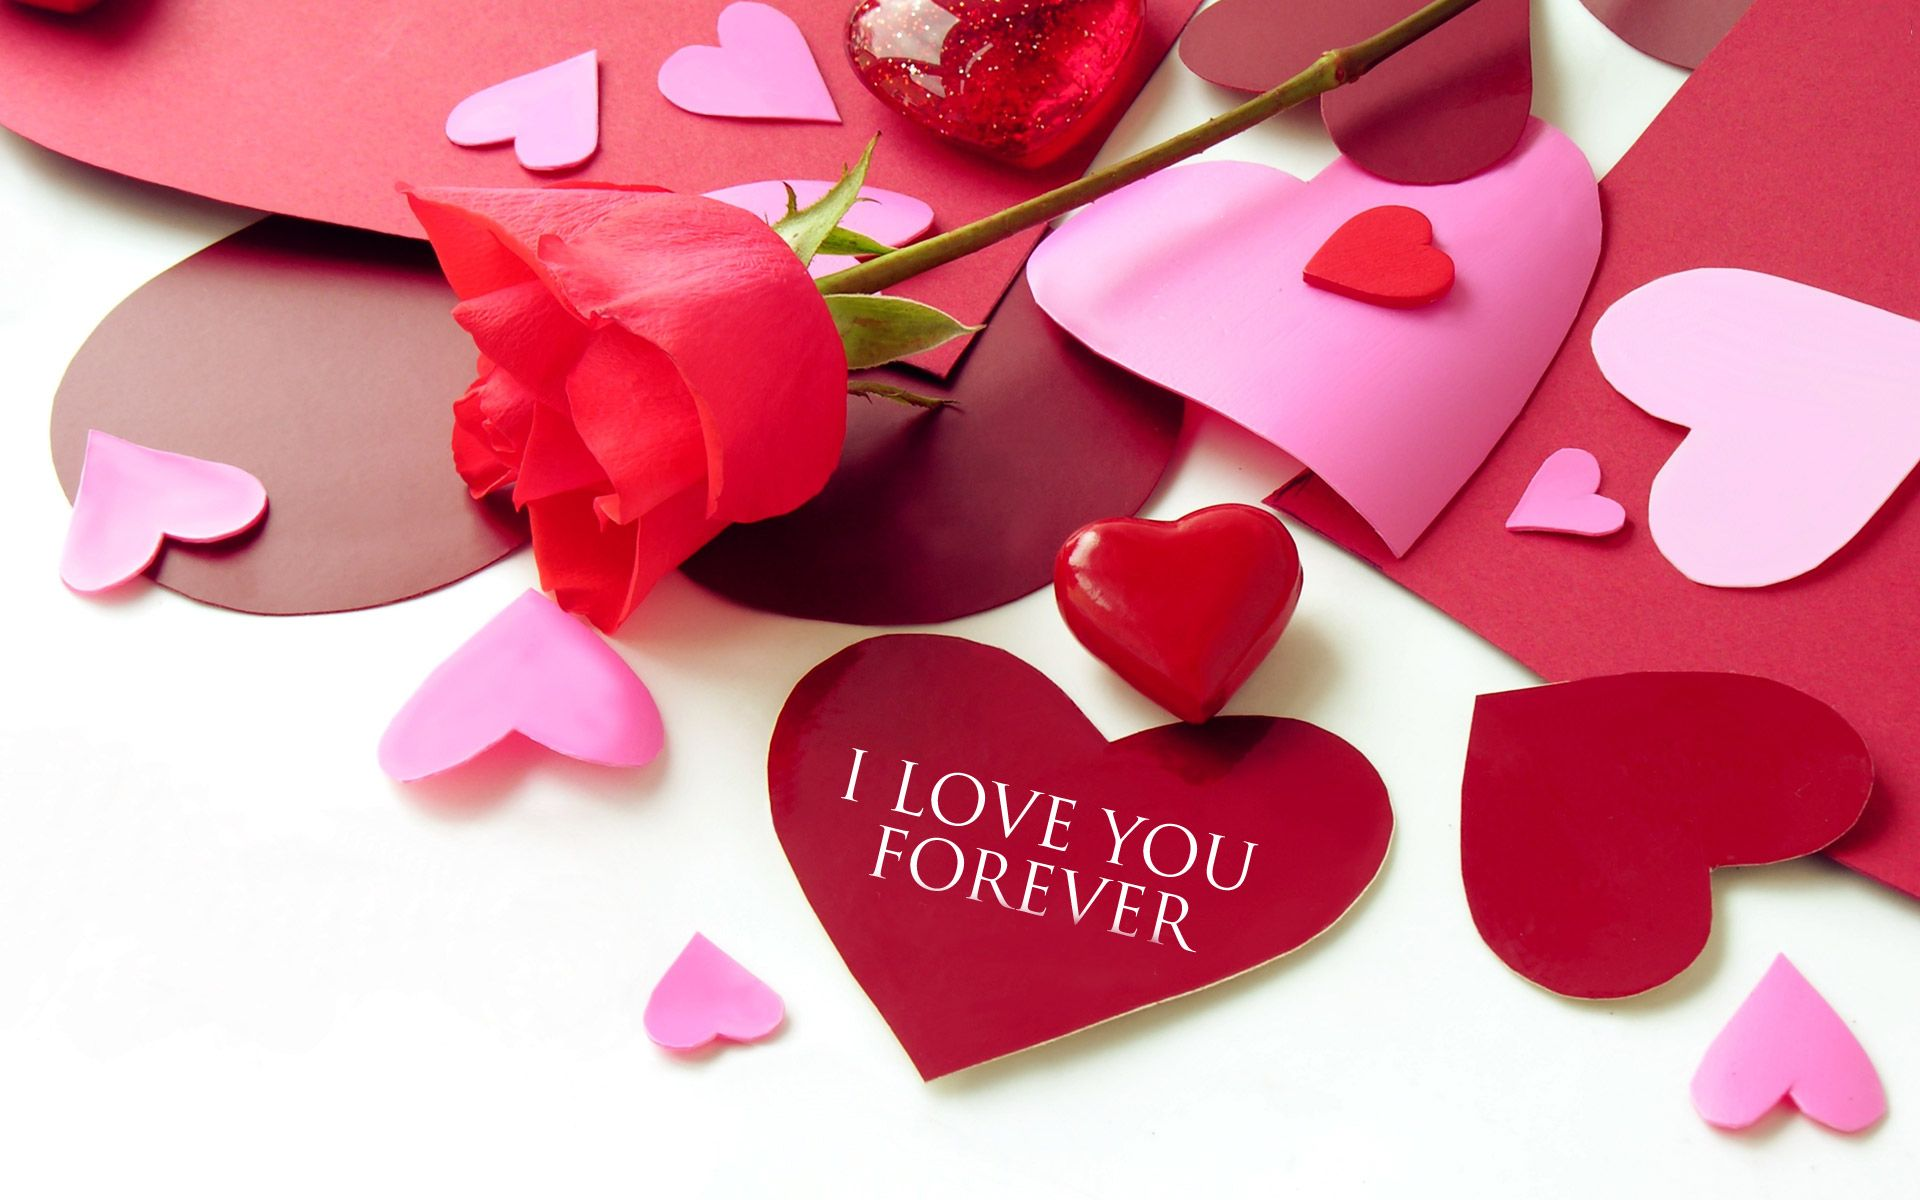 Most beautiful love you forever images heart pinterest hd most beautiful love you forever images kristyandbryce Image collections